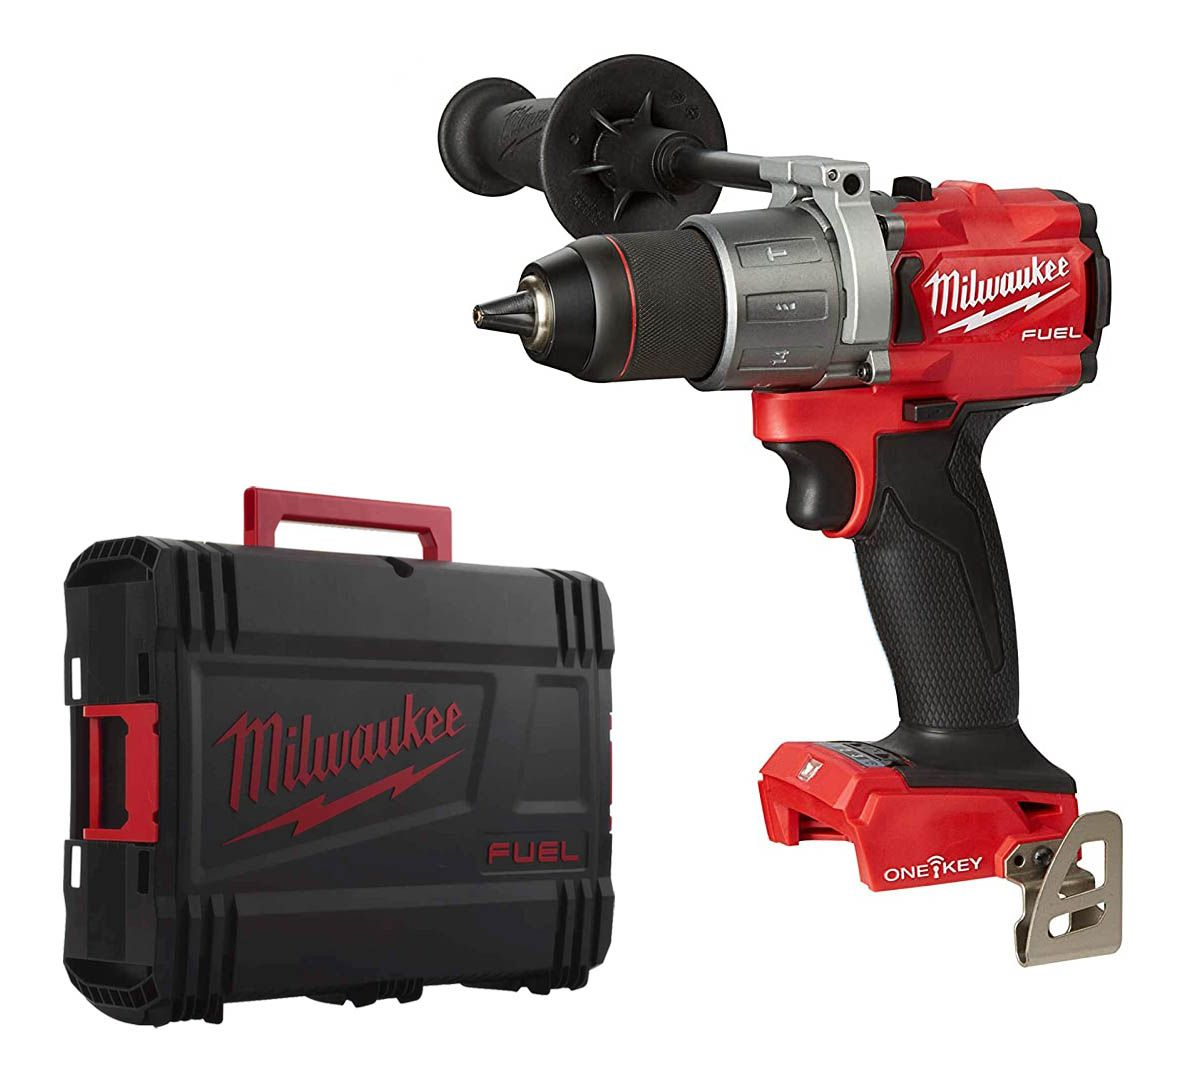 Milwaukee Fuel M18ONEPD 18v Combi Drill BODY ONLY